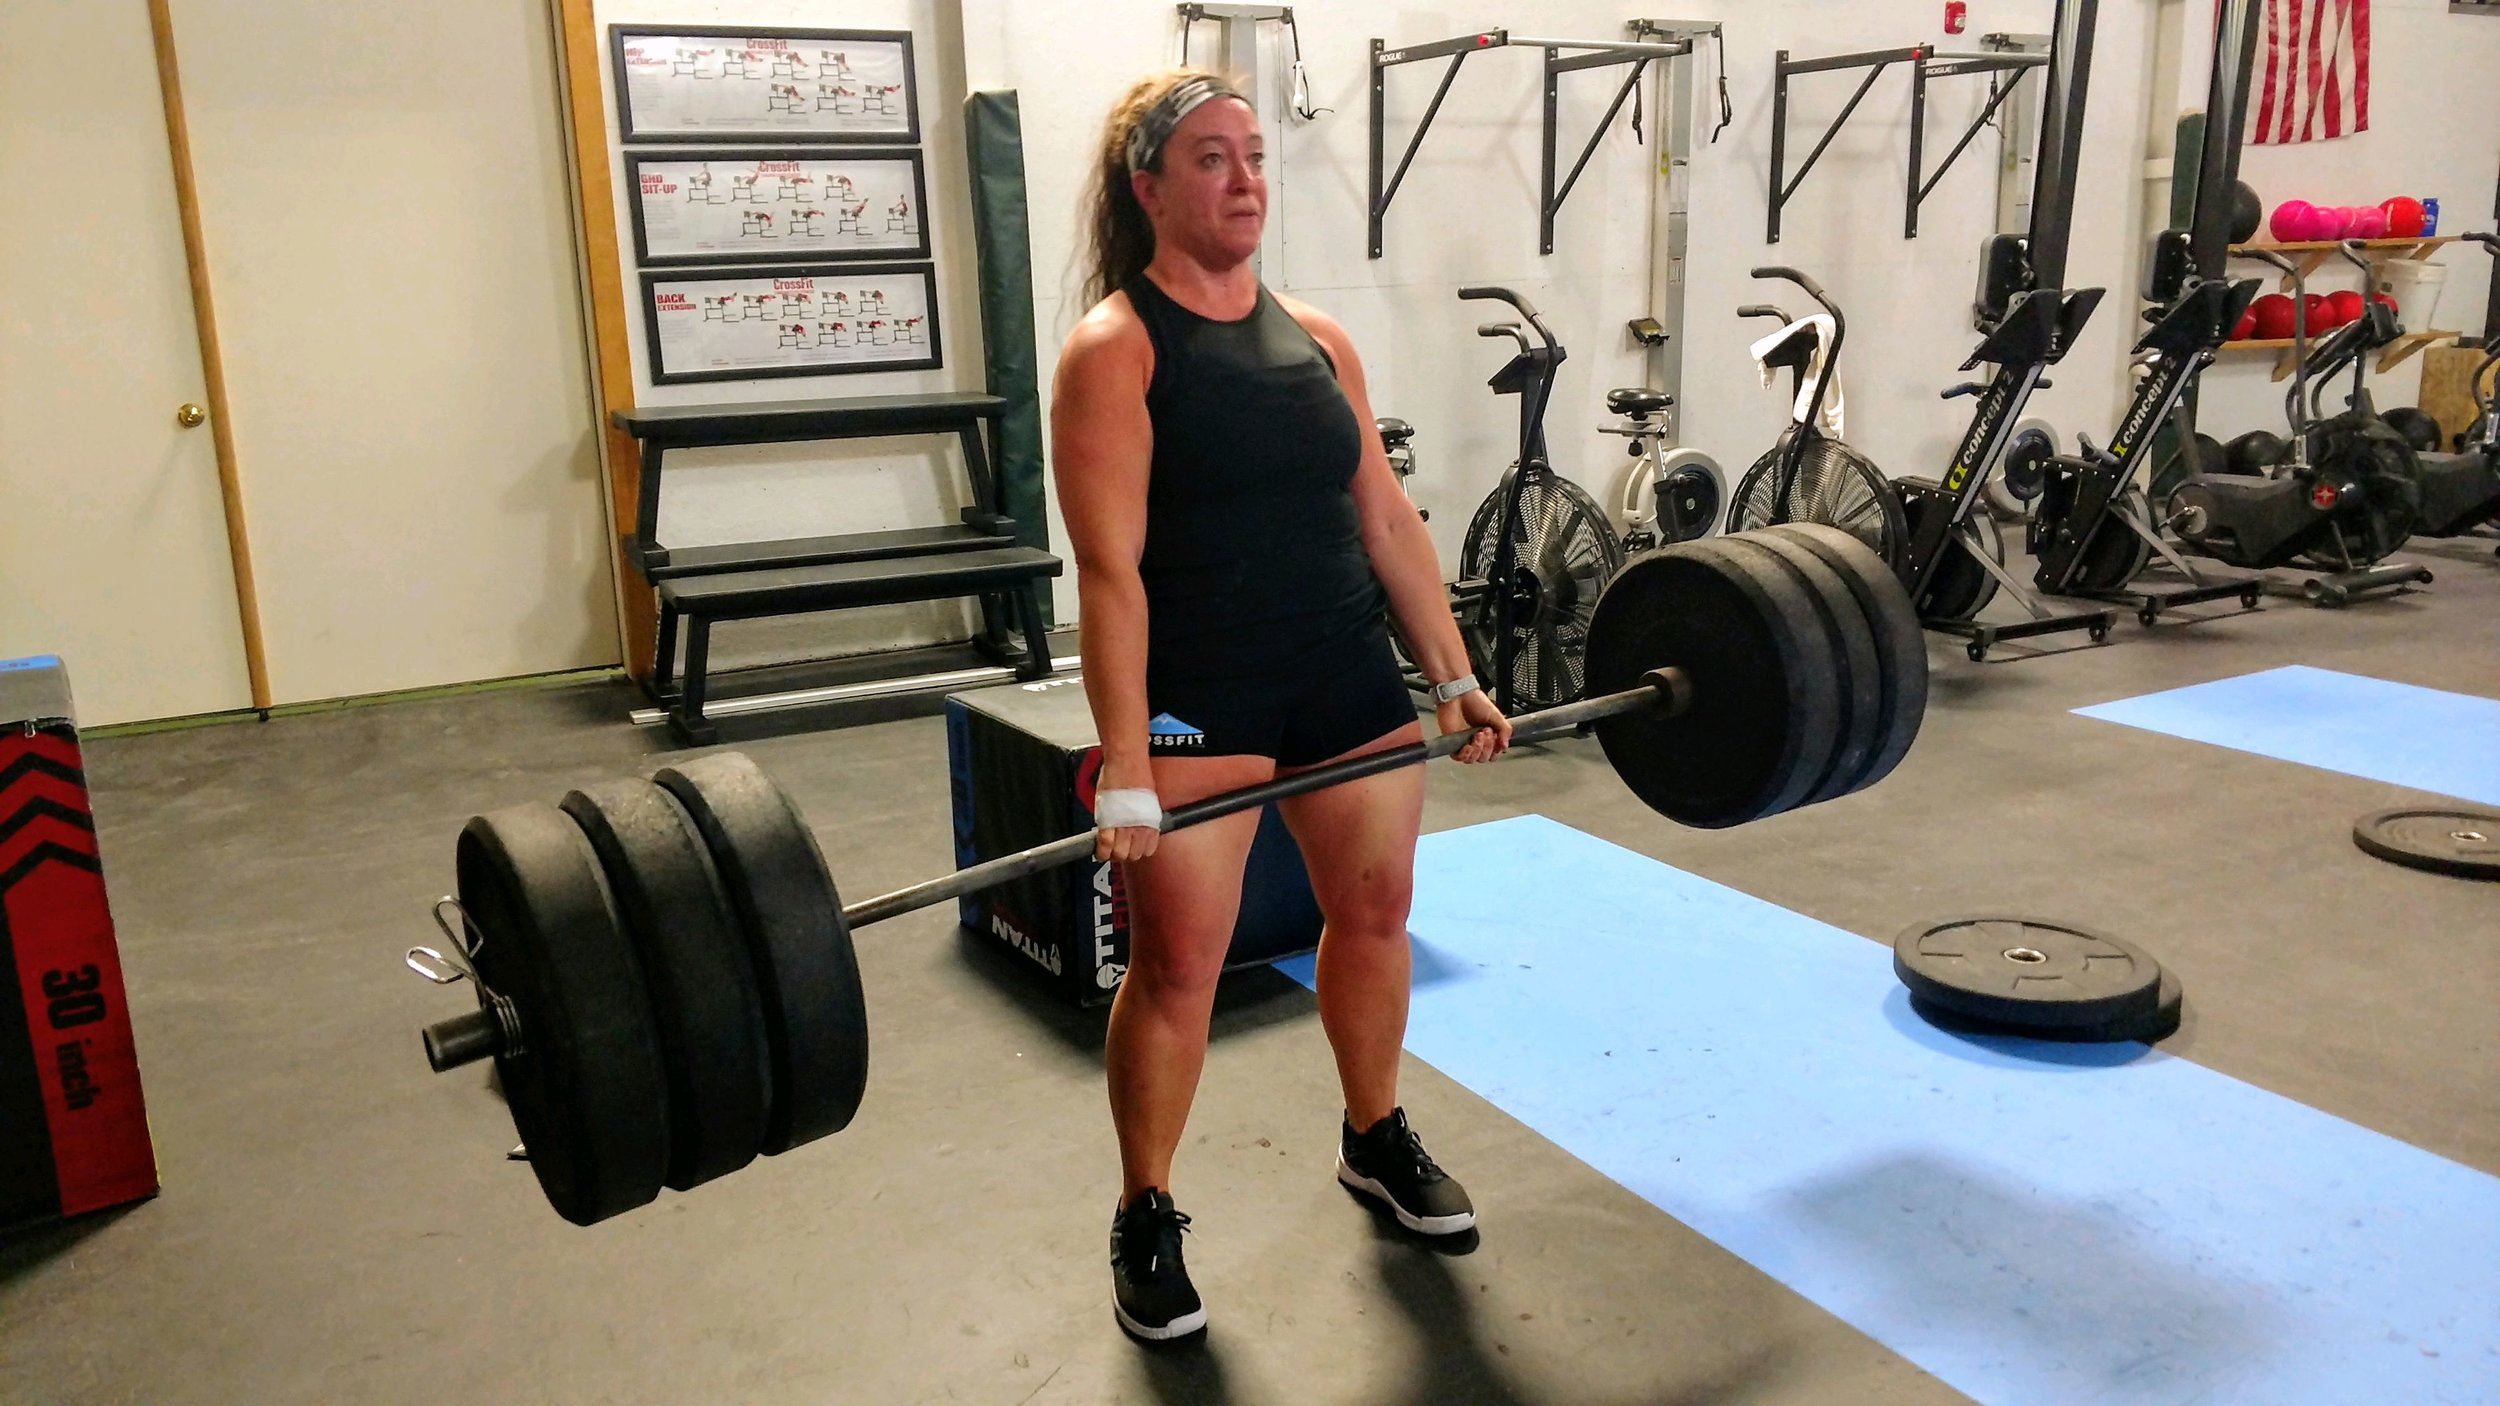 Meet Leah - Meet Leah. Leah is the newest addition to the Mount Washington CrossFit Coaching Team having just gotten her CF-L1 and Weightlifting certifications…REAd More…